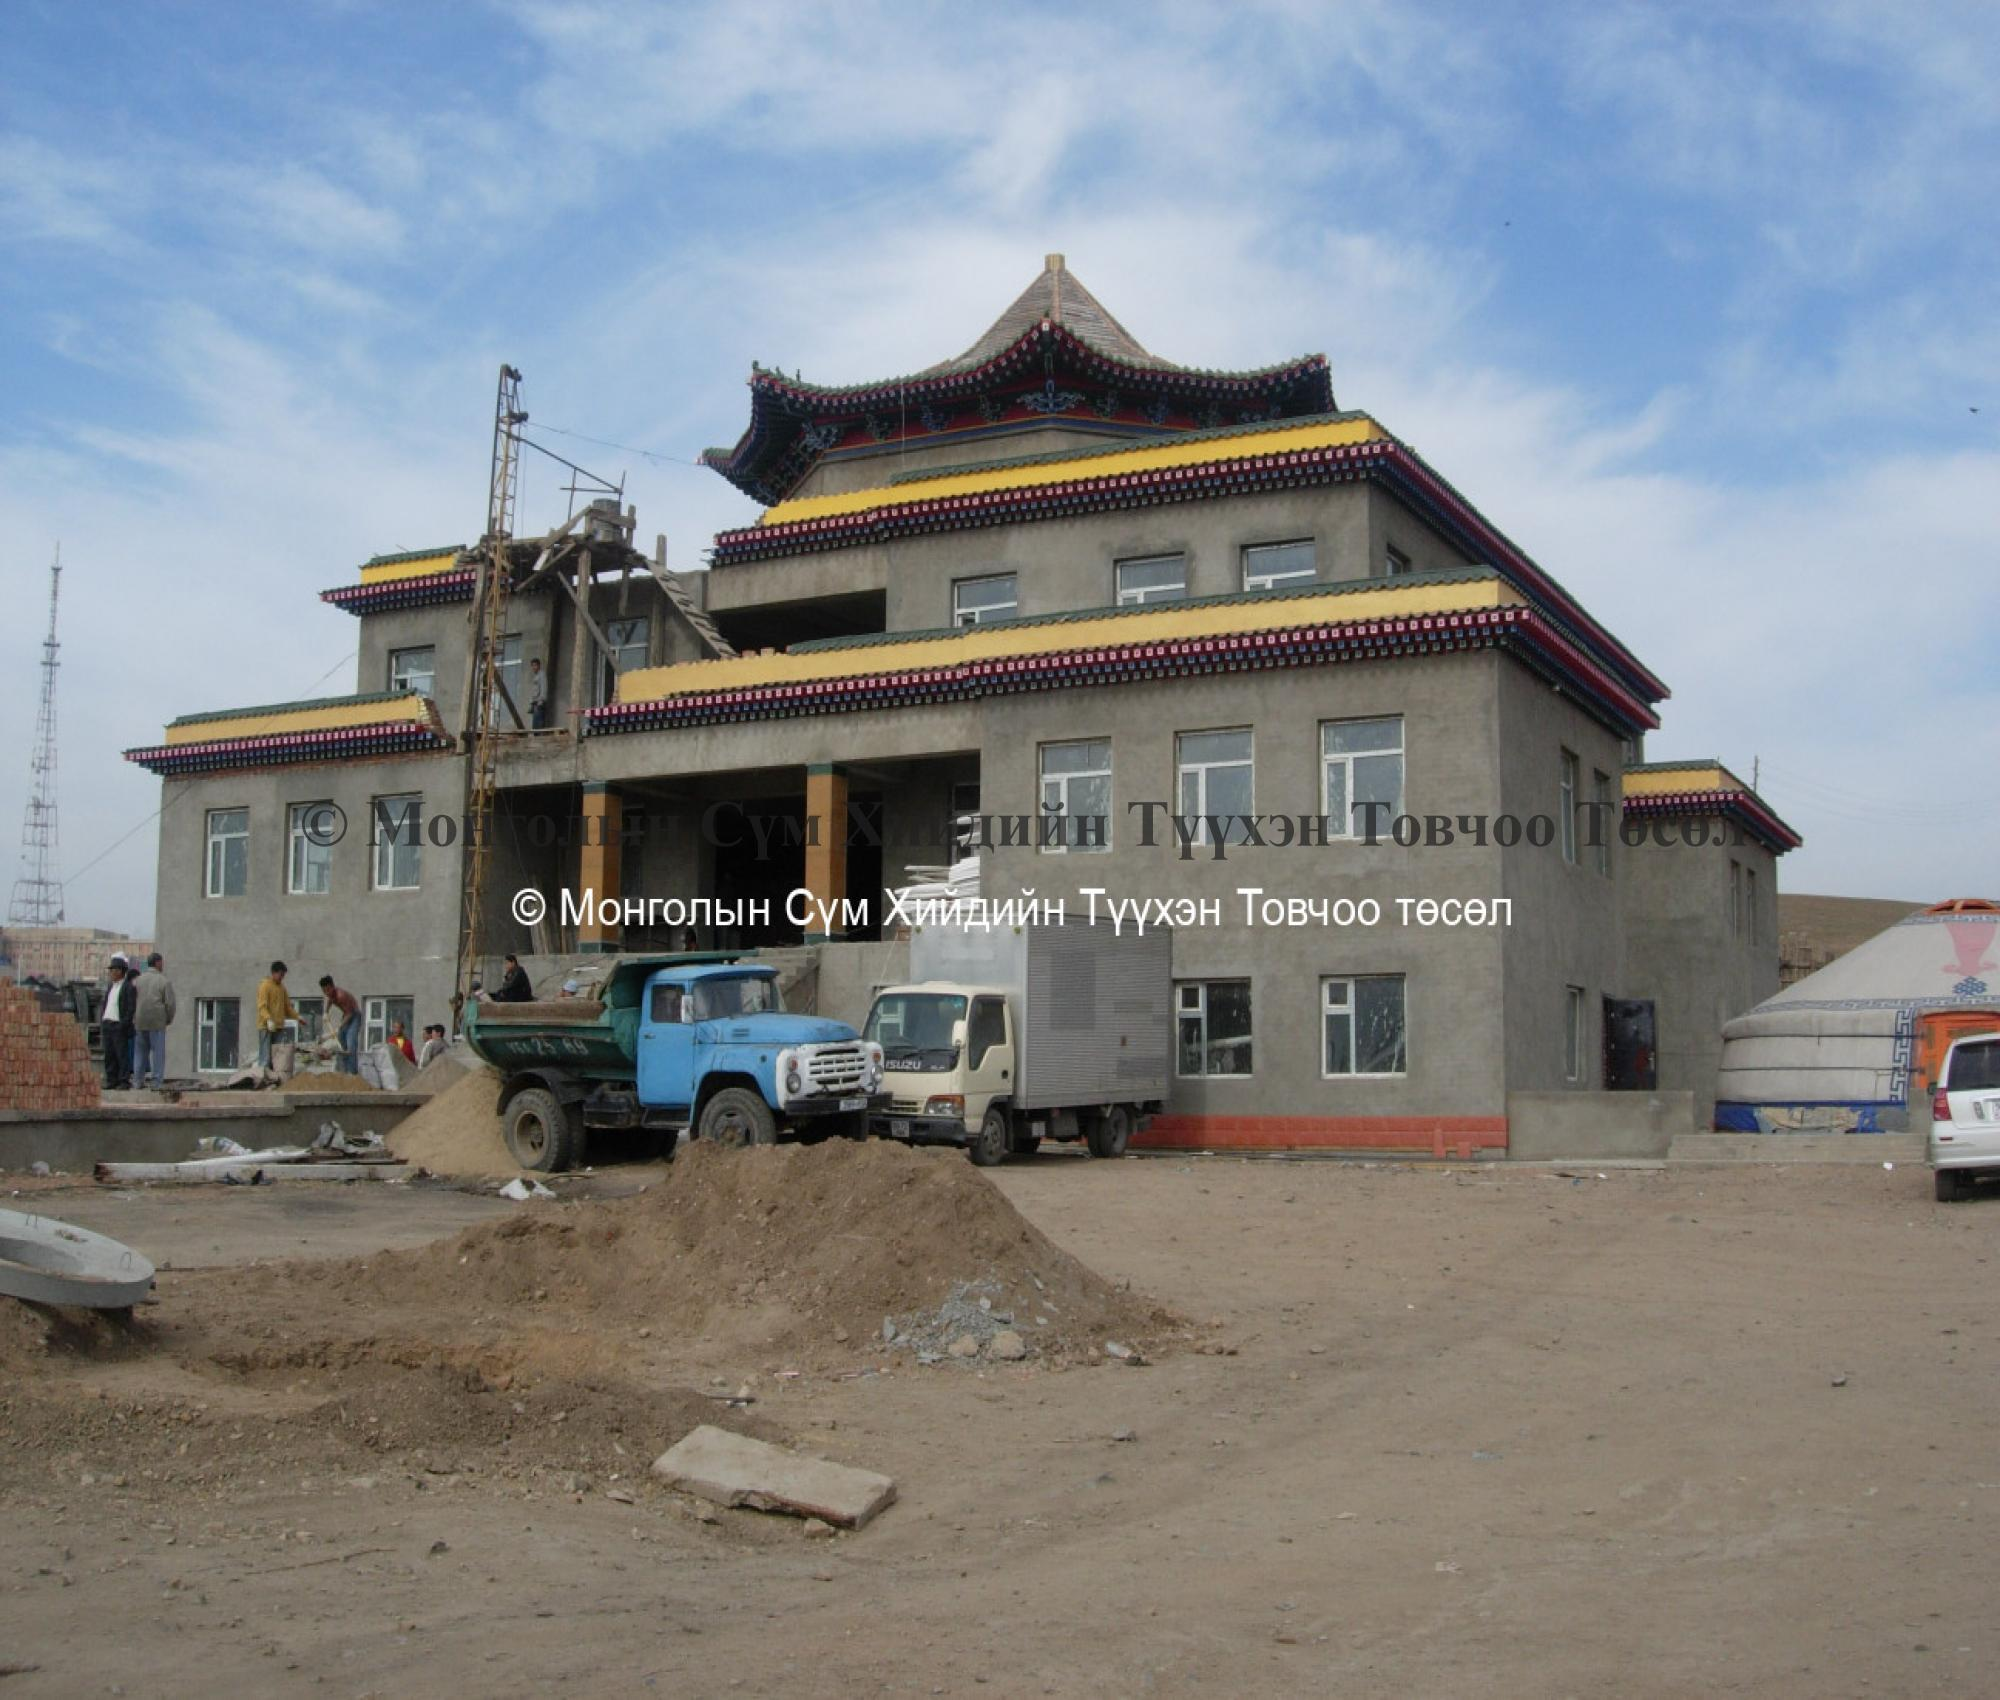 The new temple building under construction